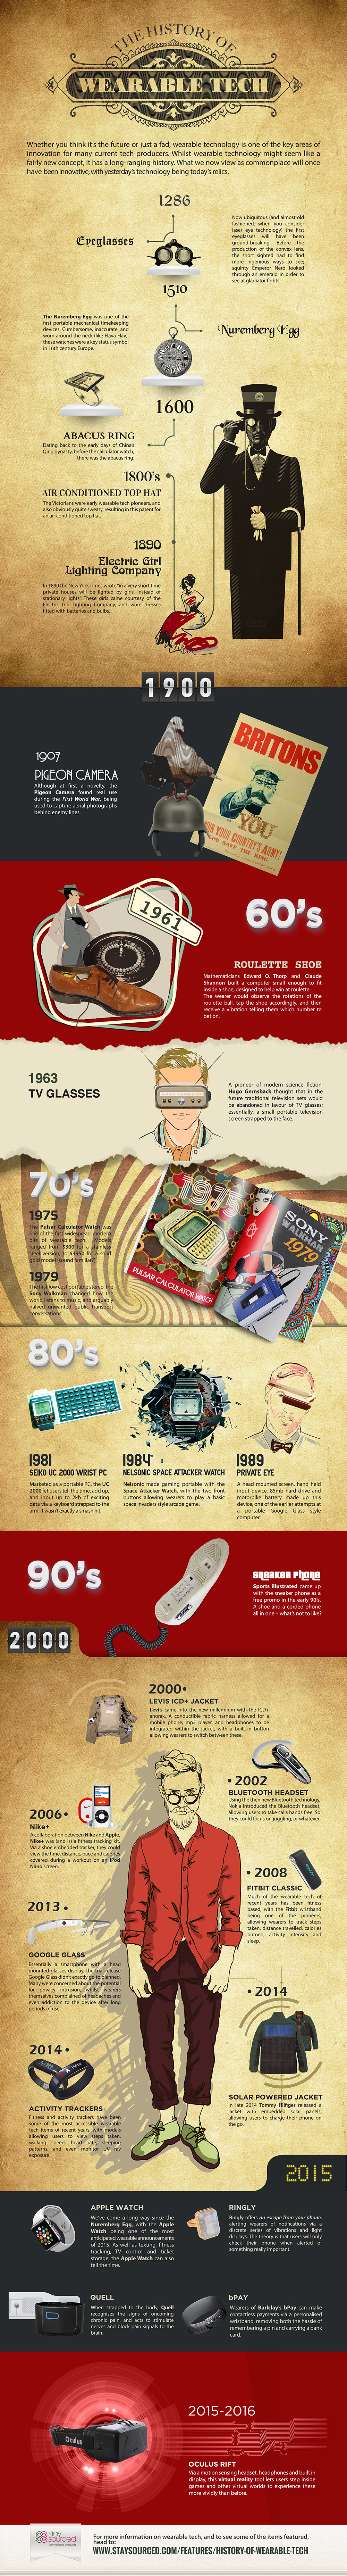 From http://www.staysourced.com/features/the-history-of-wearable-tech/